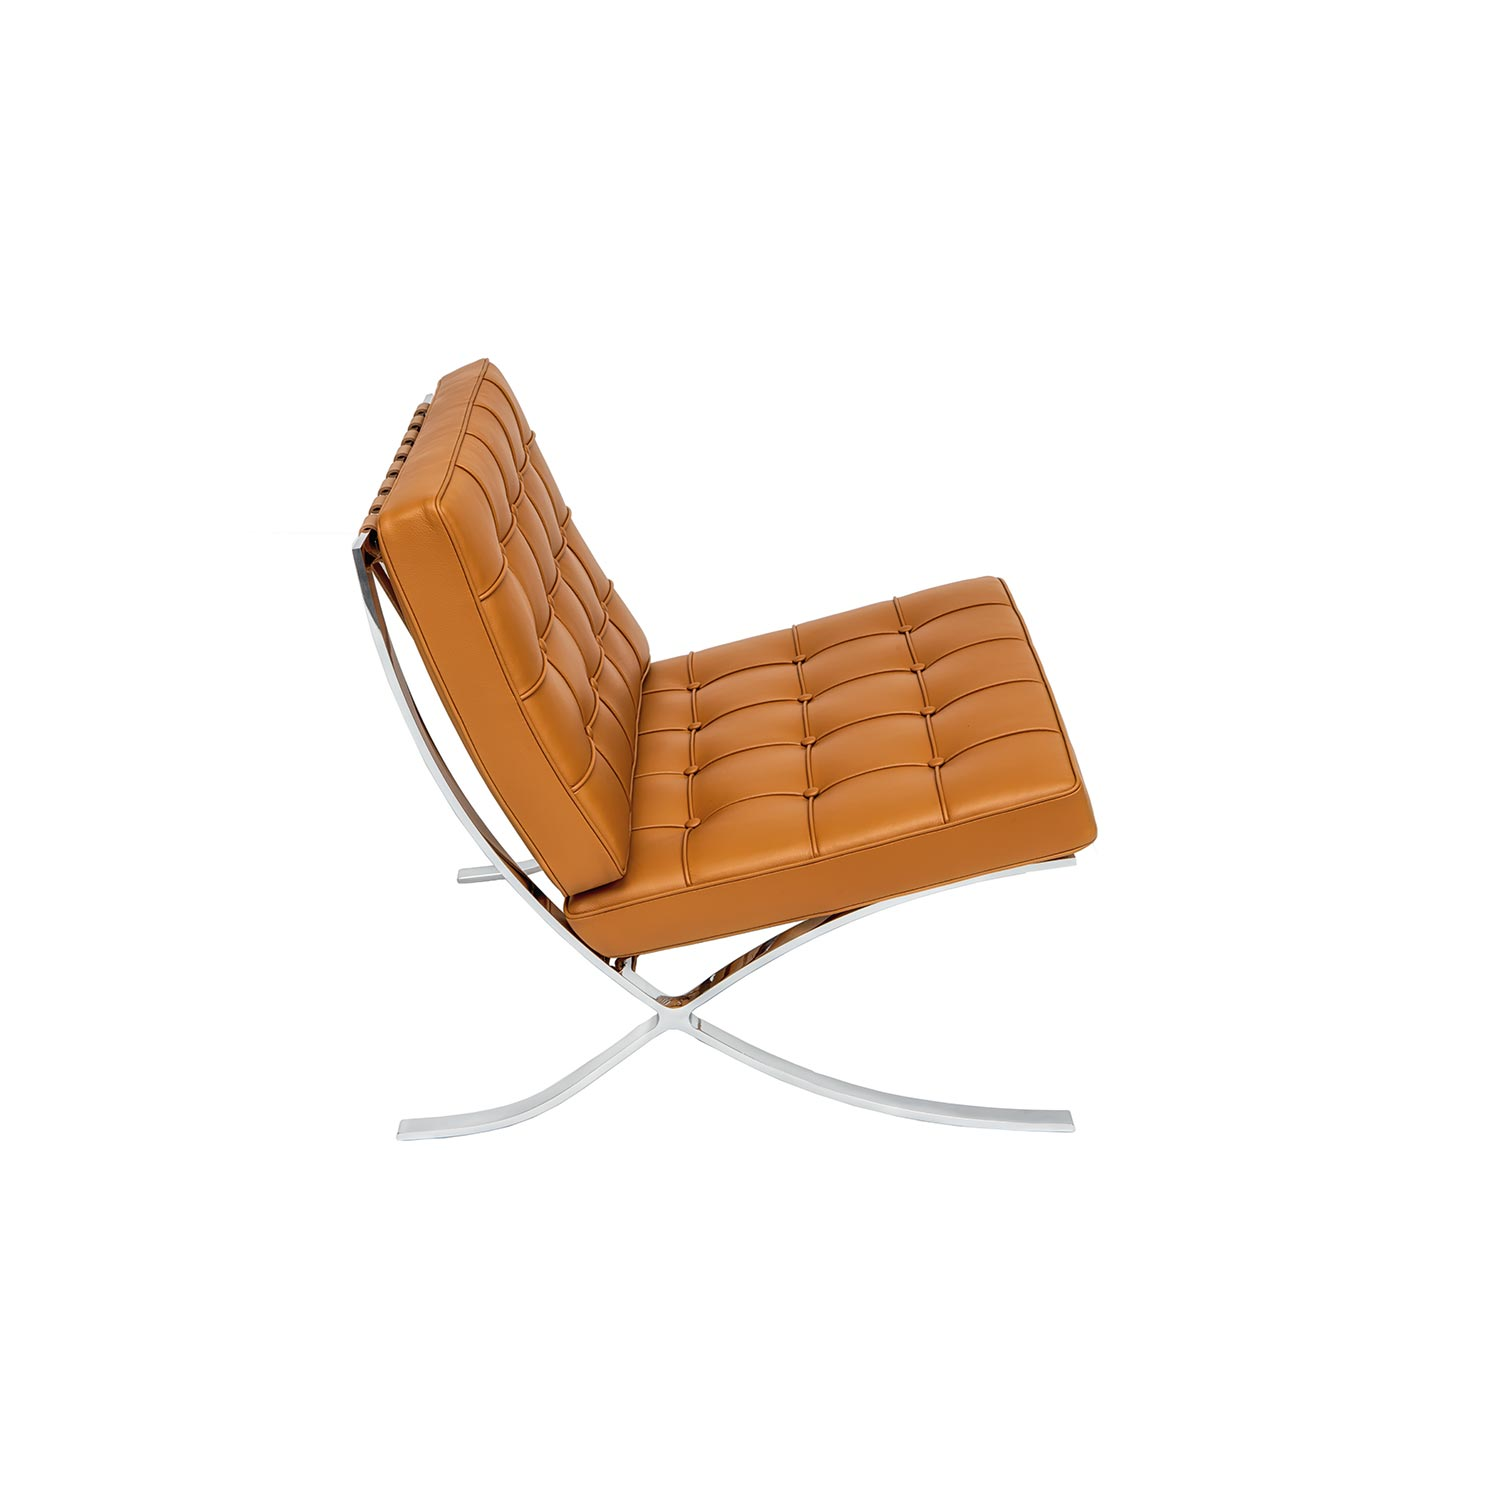 Picture of: Barcelona Style Chair By Mies Van Der Rohe Steelform Design Classics